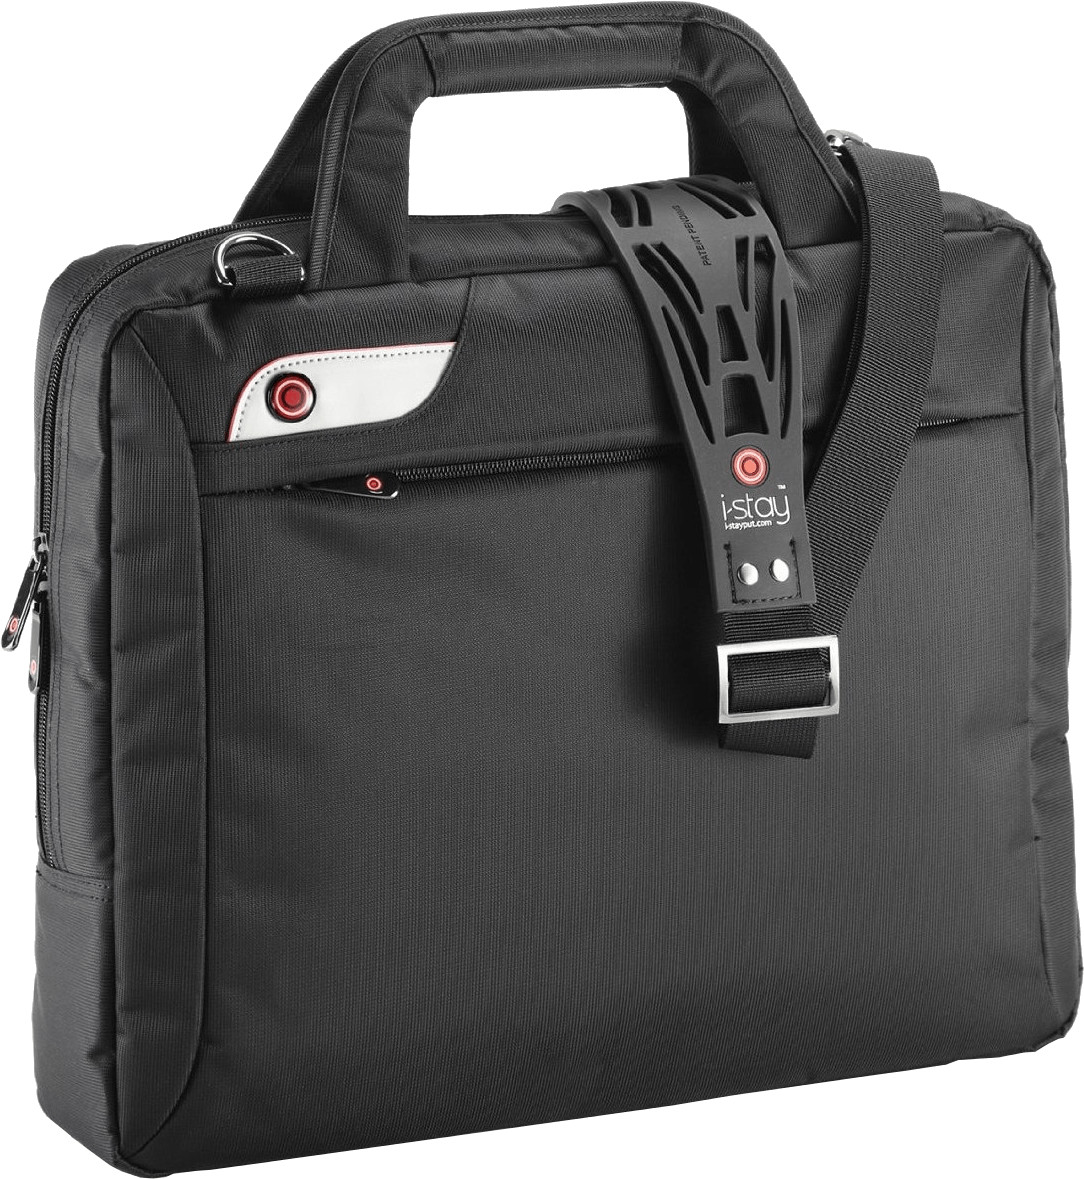 Image of Falcon i-stay Slimline Laptop Bag (is0102)